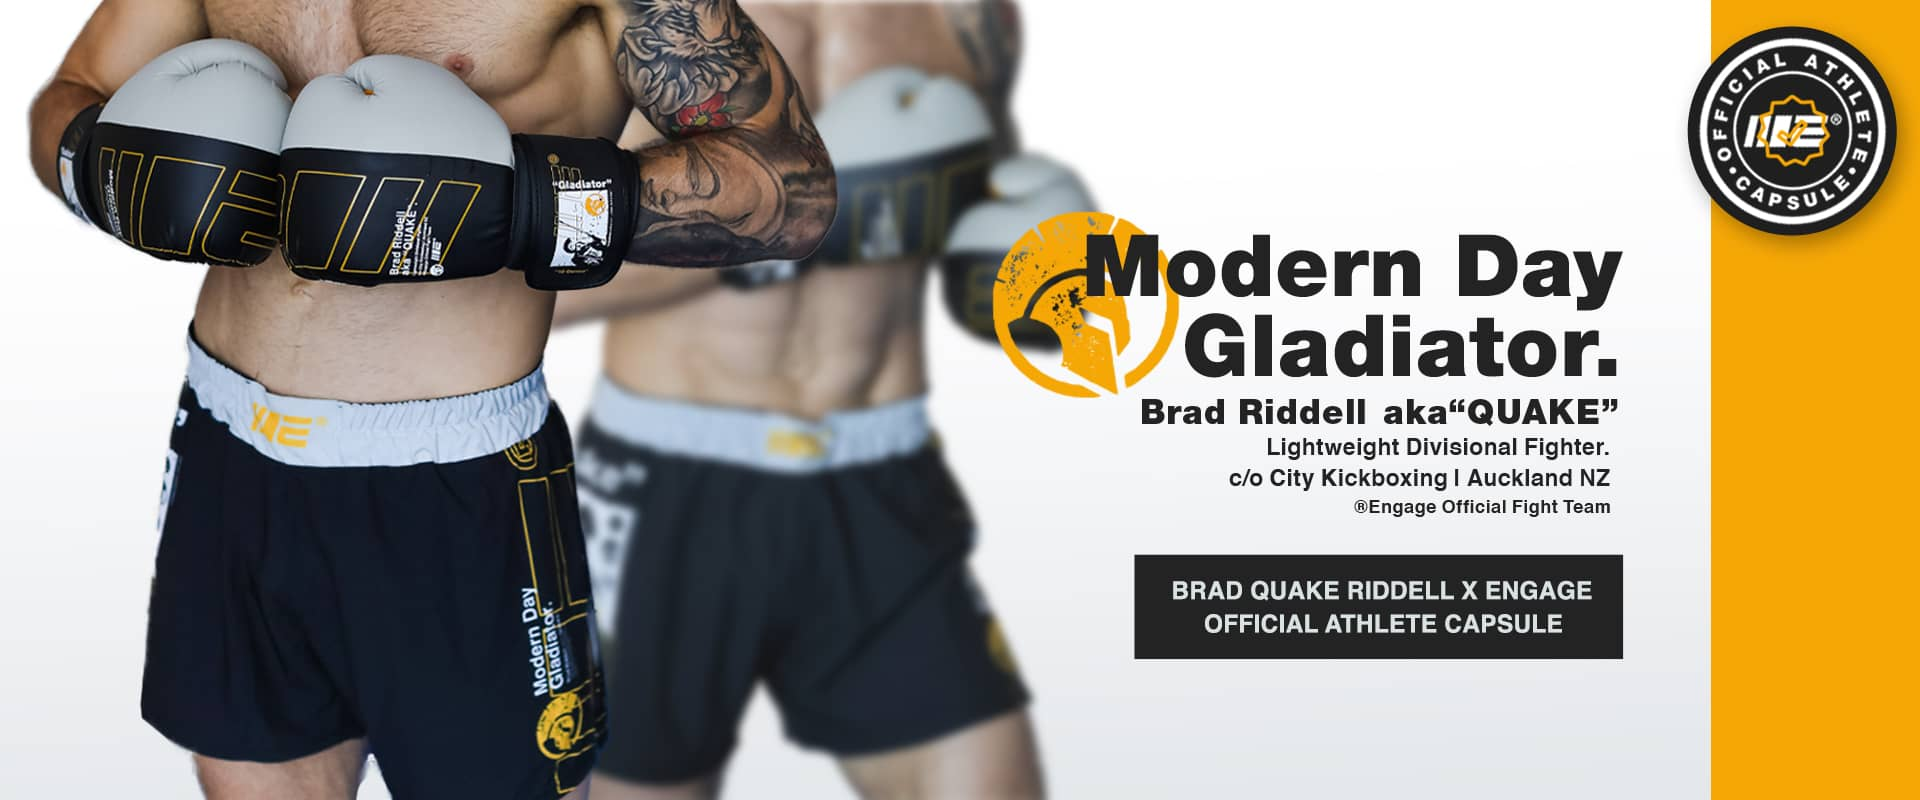 Brad Quake Riddell Modern Day Gladiator MMA Fight Wear and Fight Gear Capsule in collaboration with Engage MMA, includes boxing gloves, MMA Hybrid Shorts and Supporter T-shirt